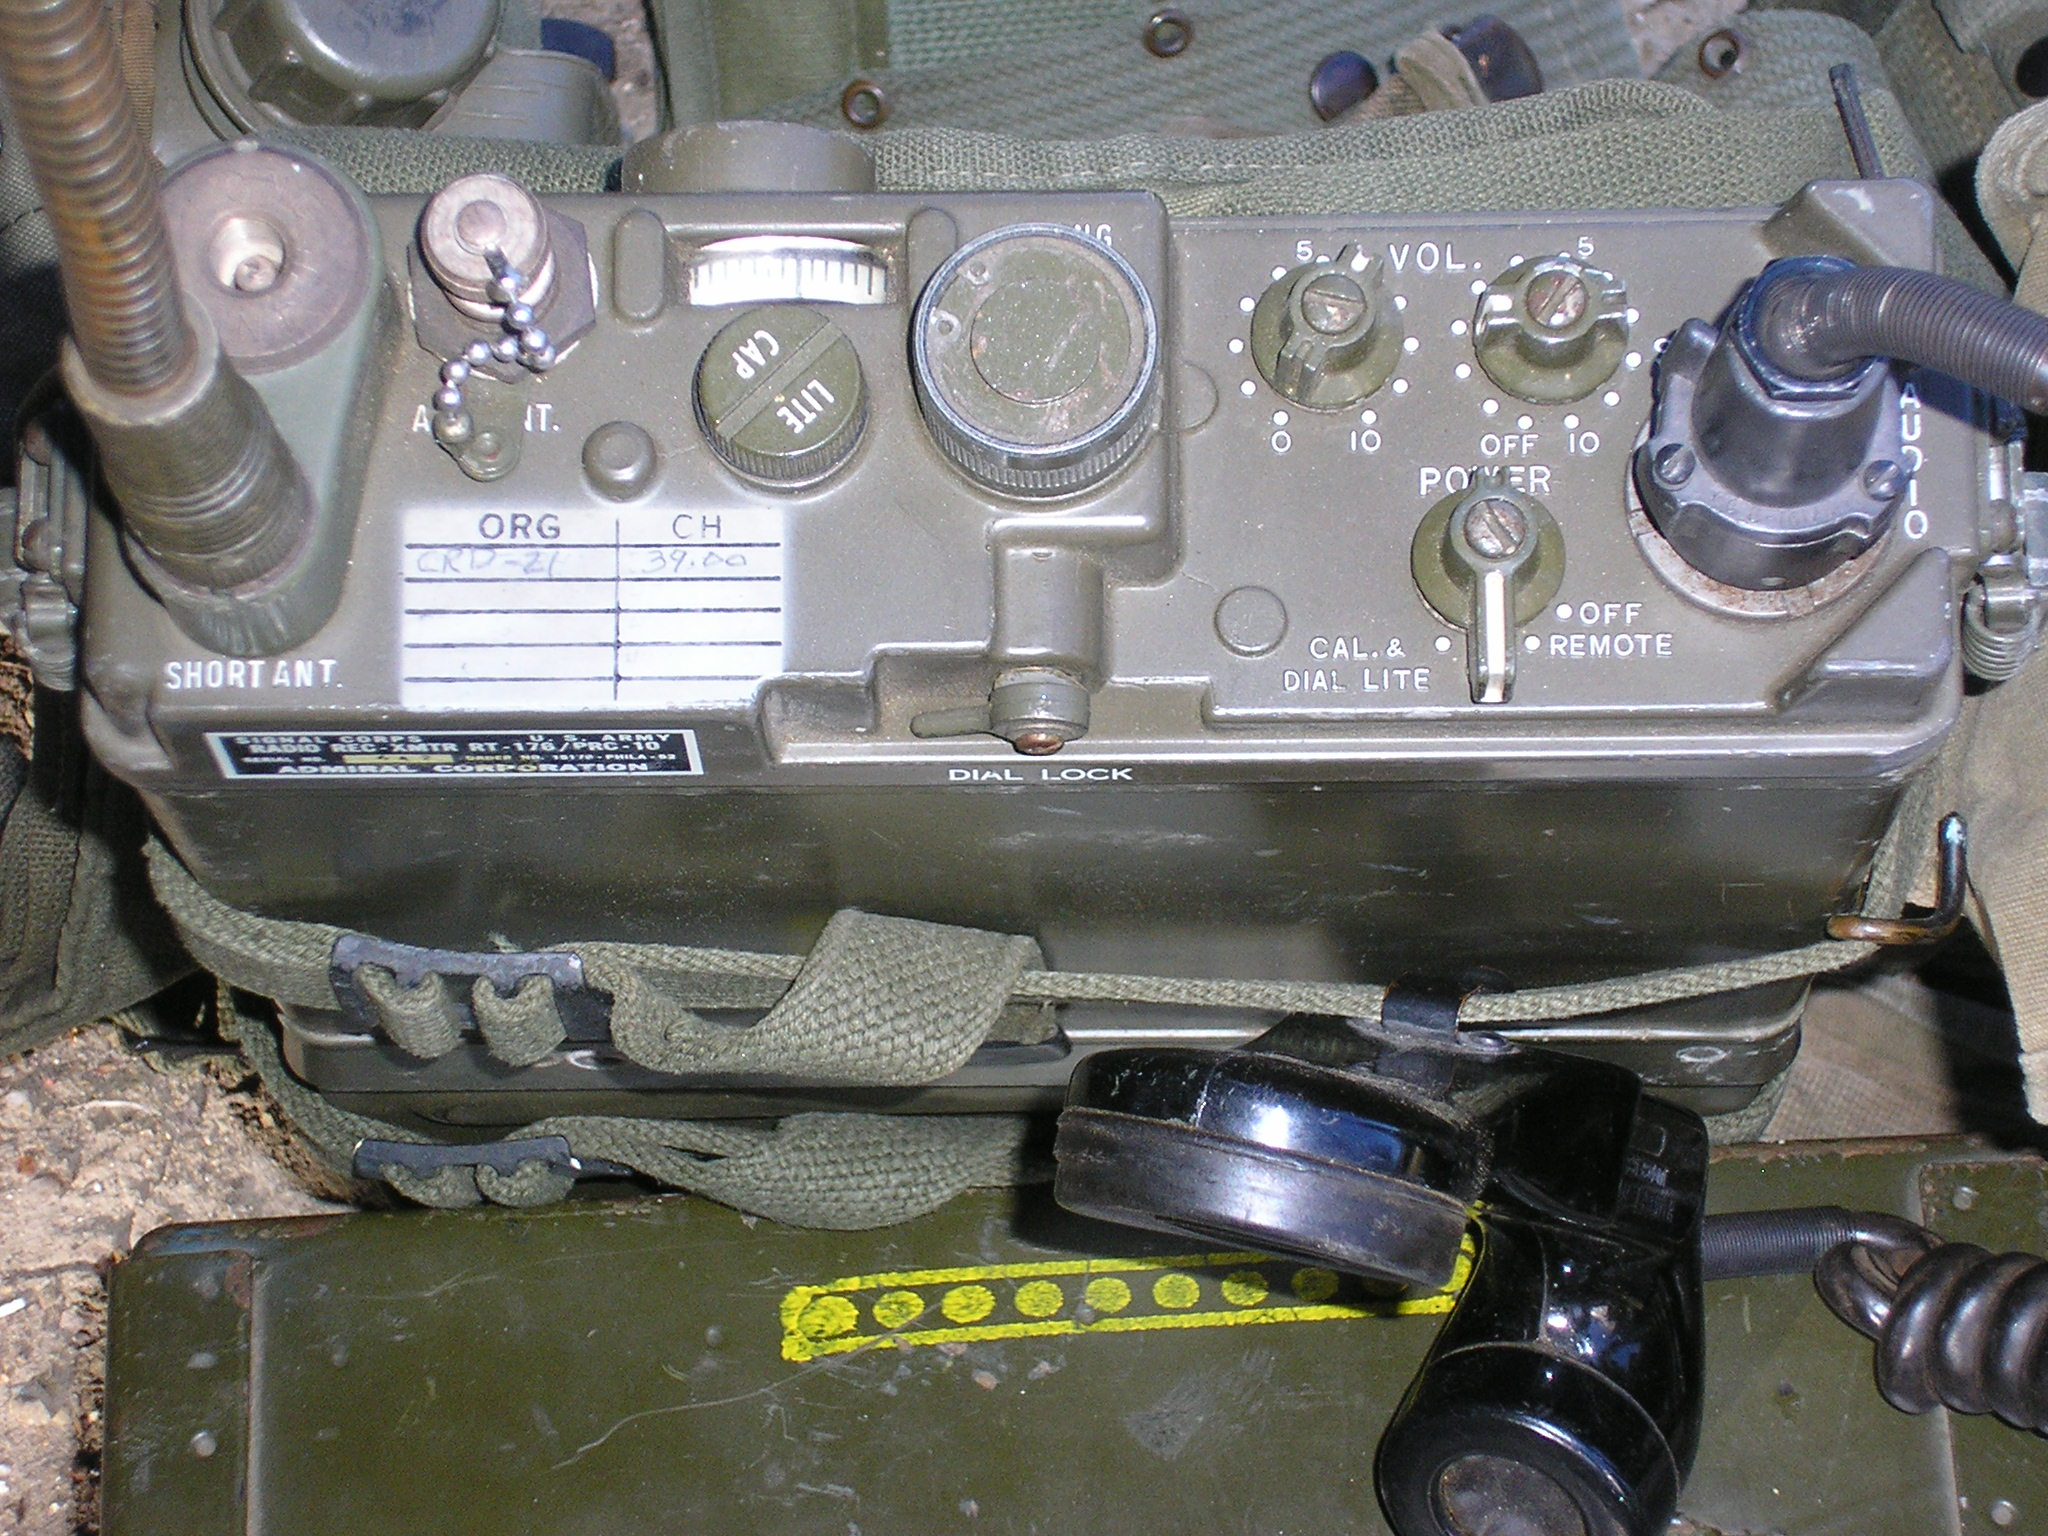 AN/PRC-10 Infantry Field Radio